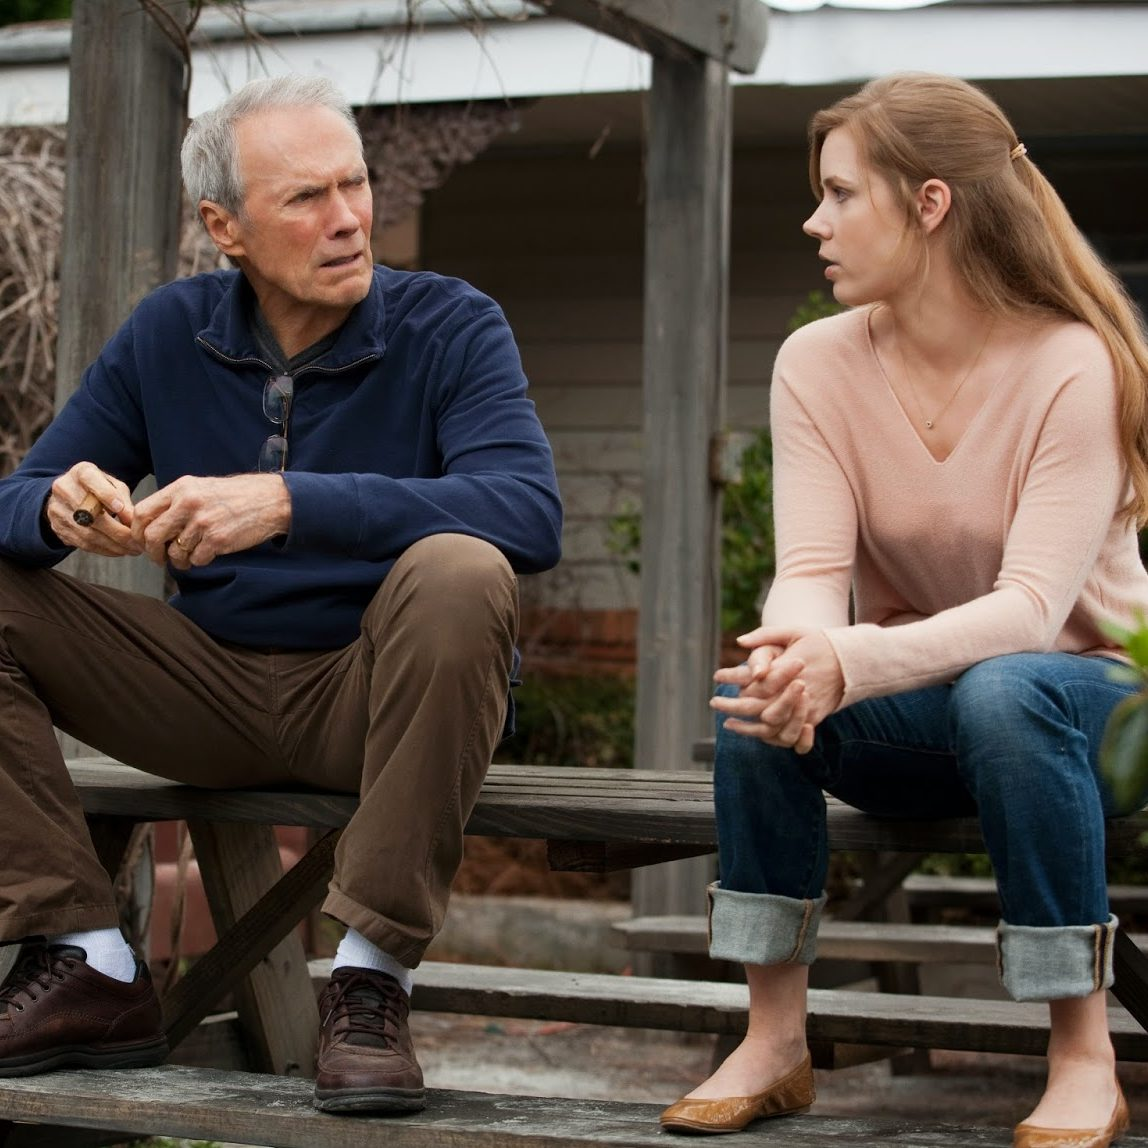 clint eastwood amy adams trouble with the curve e1598951668421 20 Things You Probably Didn't Know About Clint Eastwood's 1982 Film Firefox